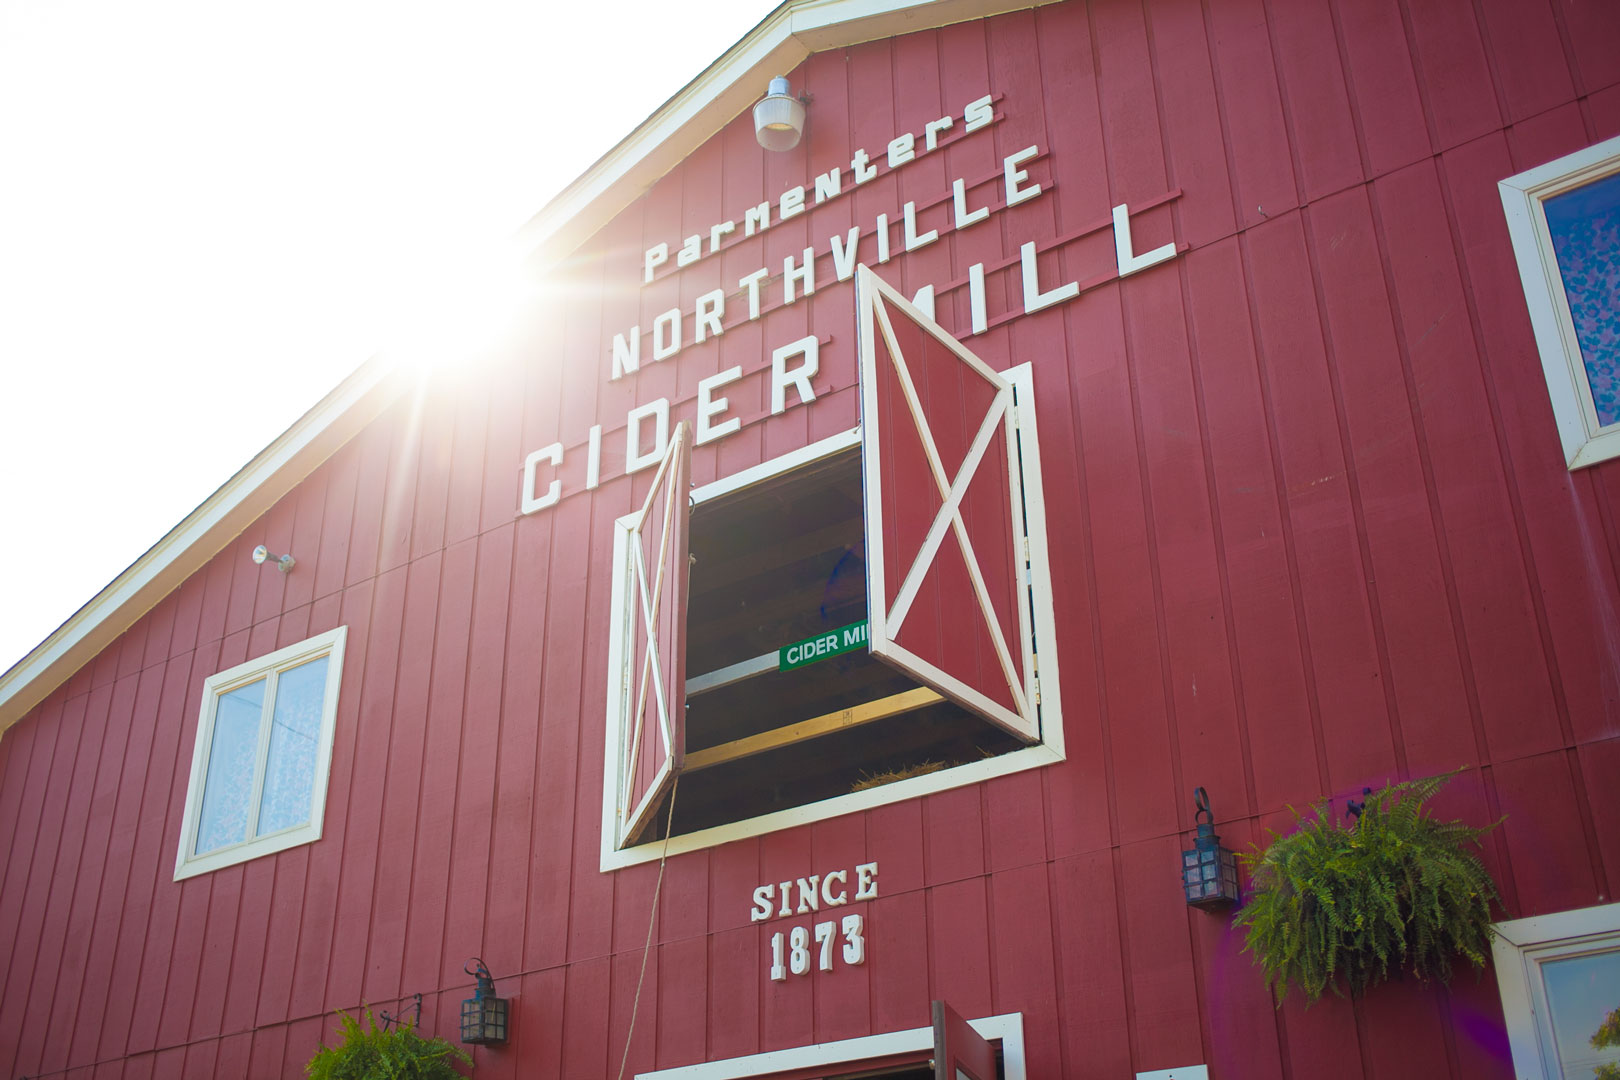 Parmenter's Cider Mill in Northville, MI.